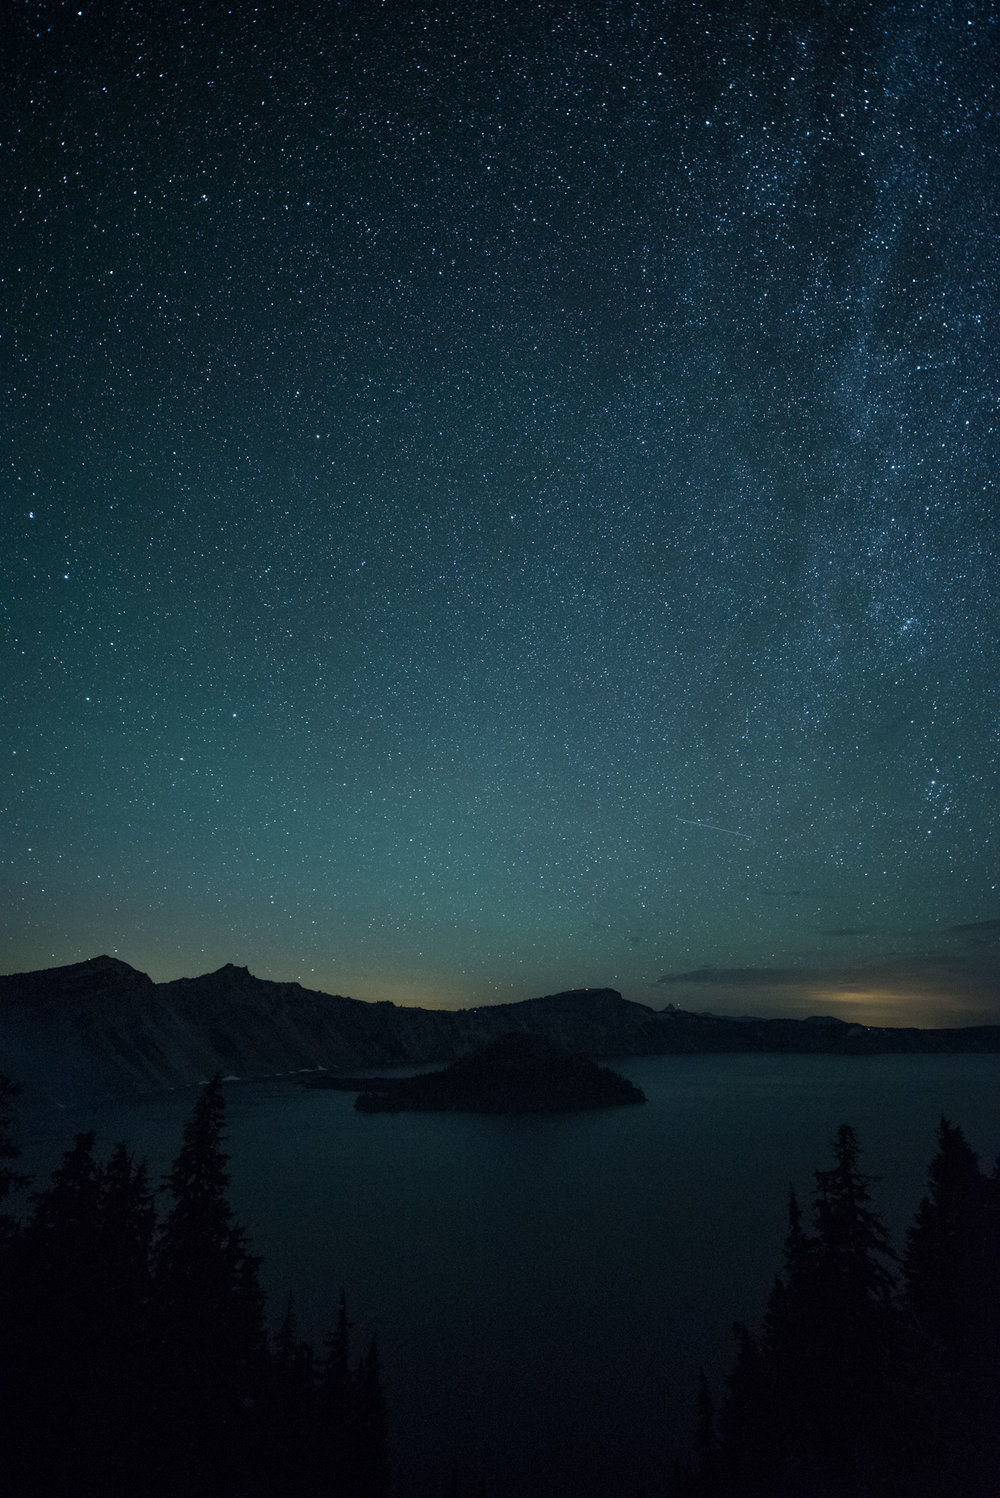 Figure 12. Crater Lake National Park, Oregon. 30 seconds, f/2.8, ISO 6400. Ambient temperature approximately 43 F. (Click/tap for larger view.)